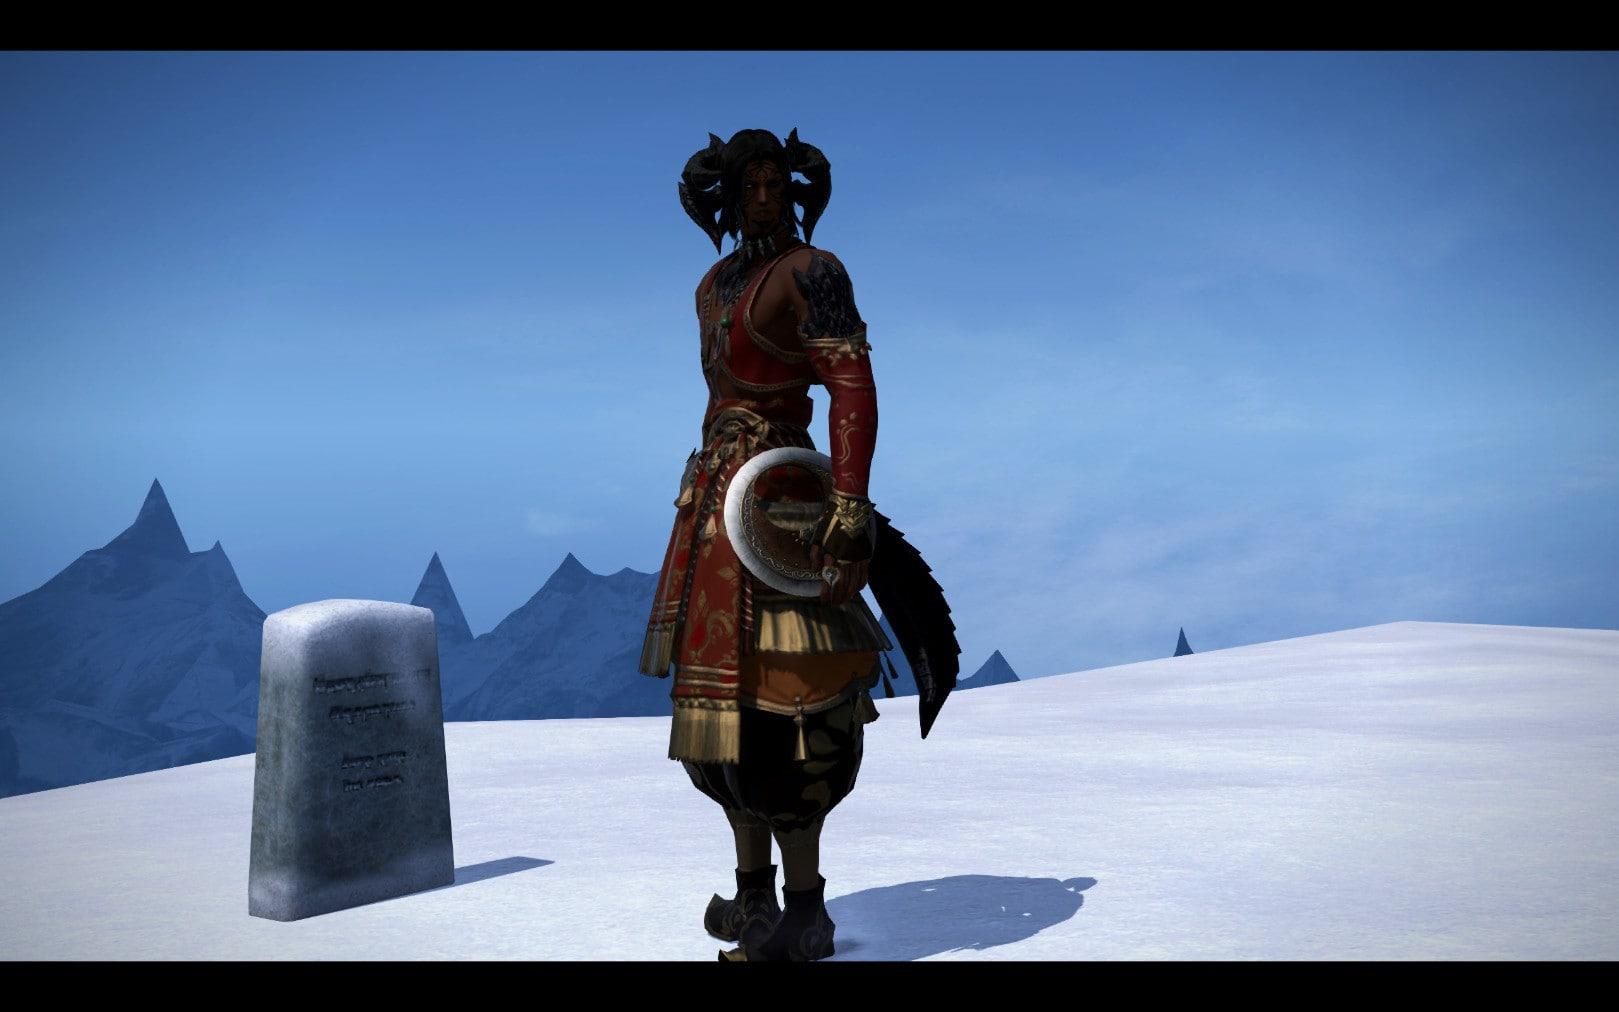 An underdressed FFXIV protagonist standing next to a grave marker in the snow.